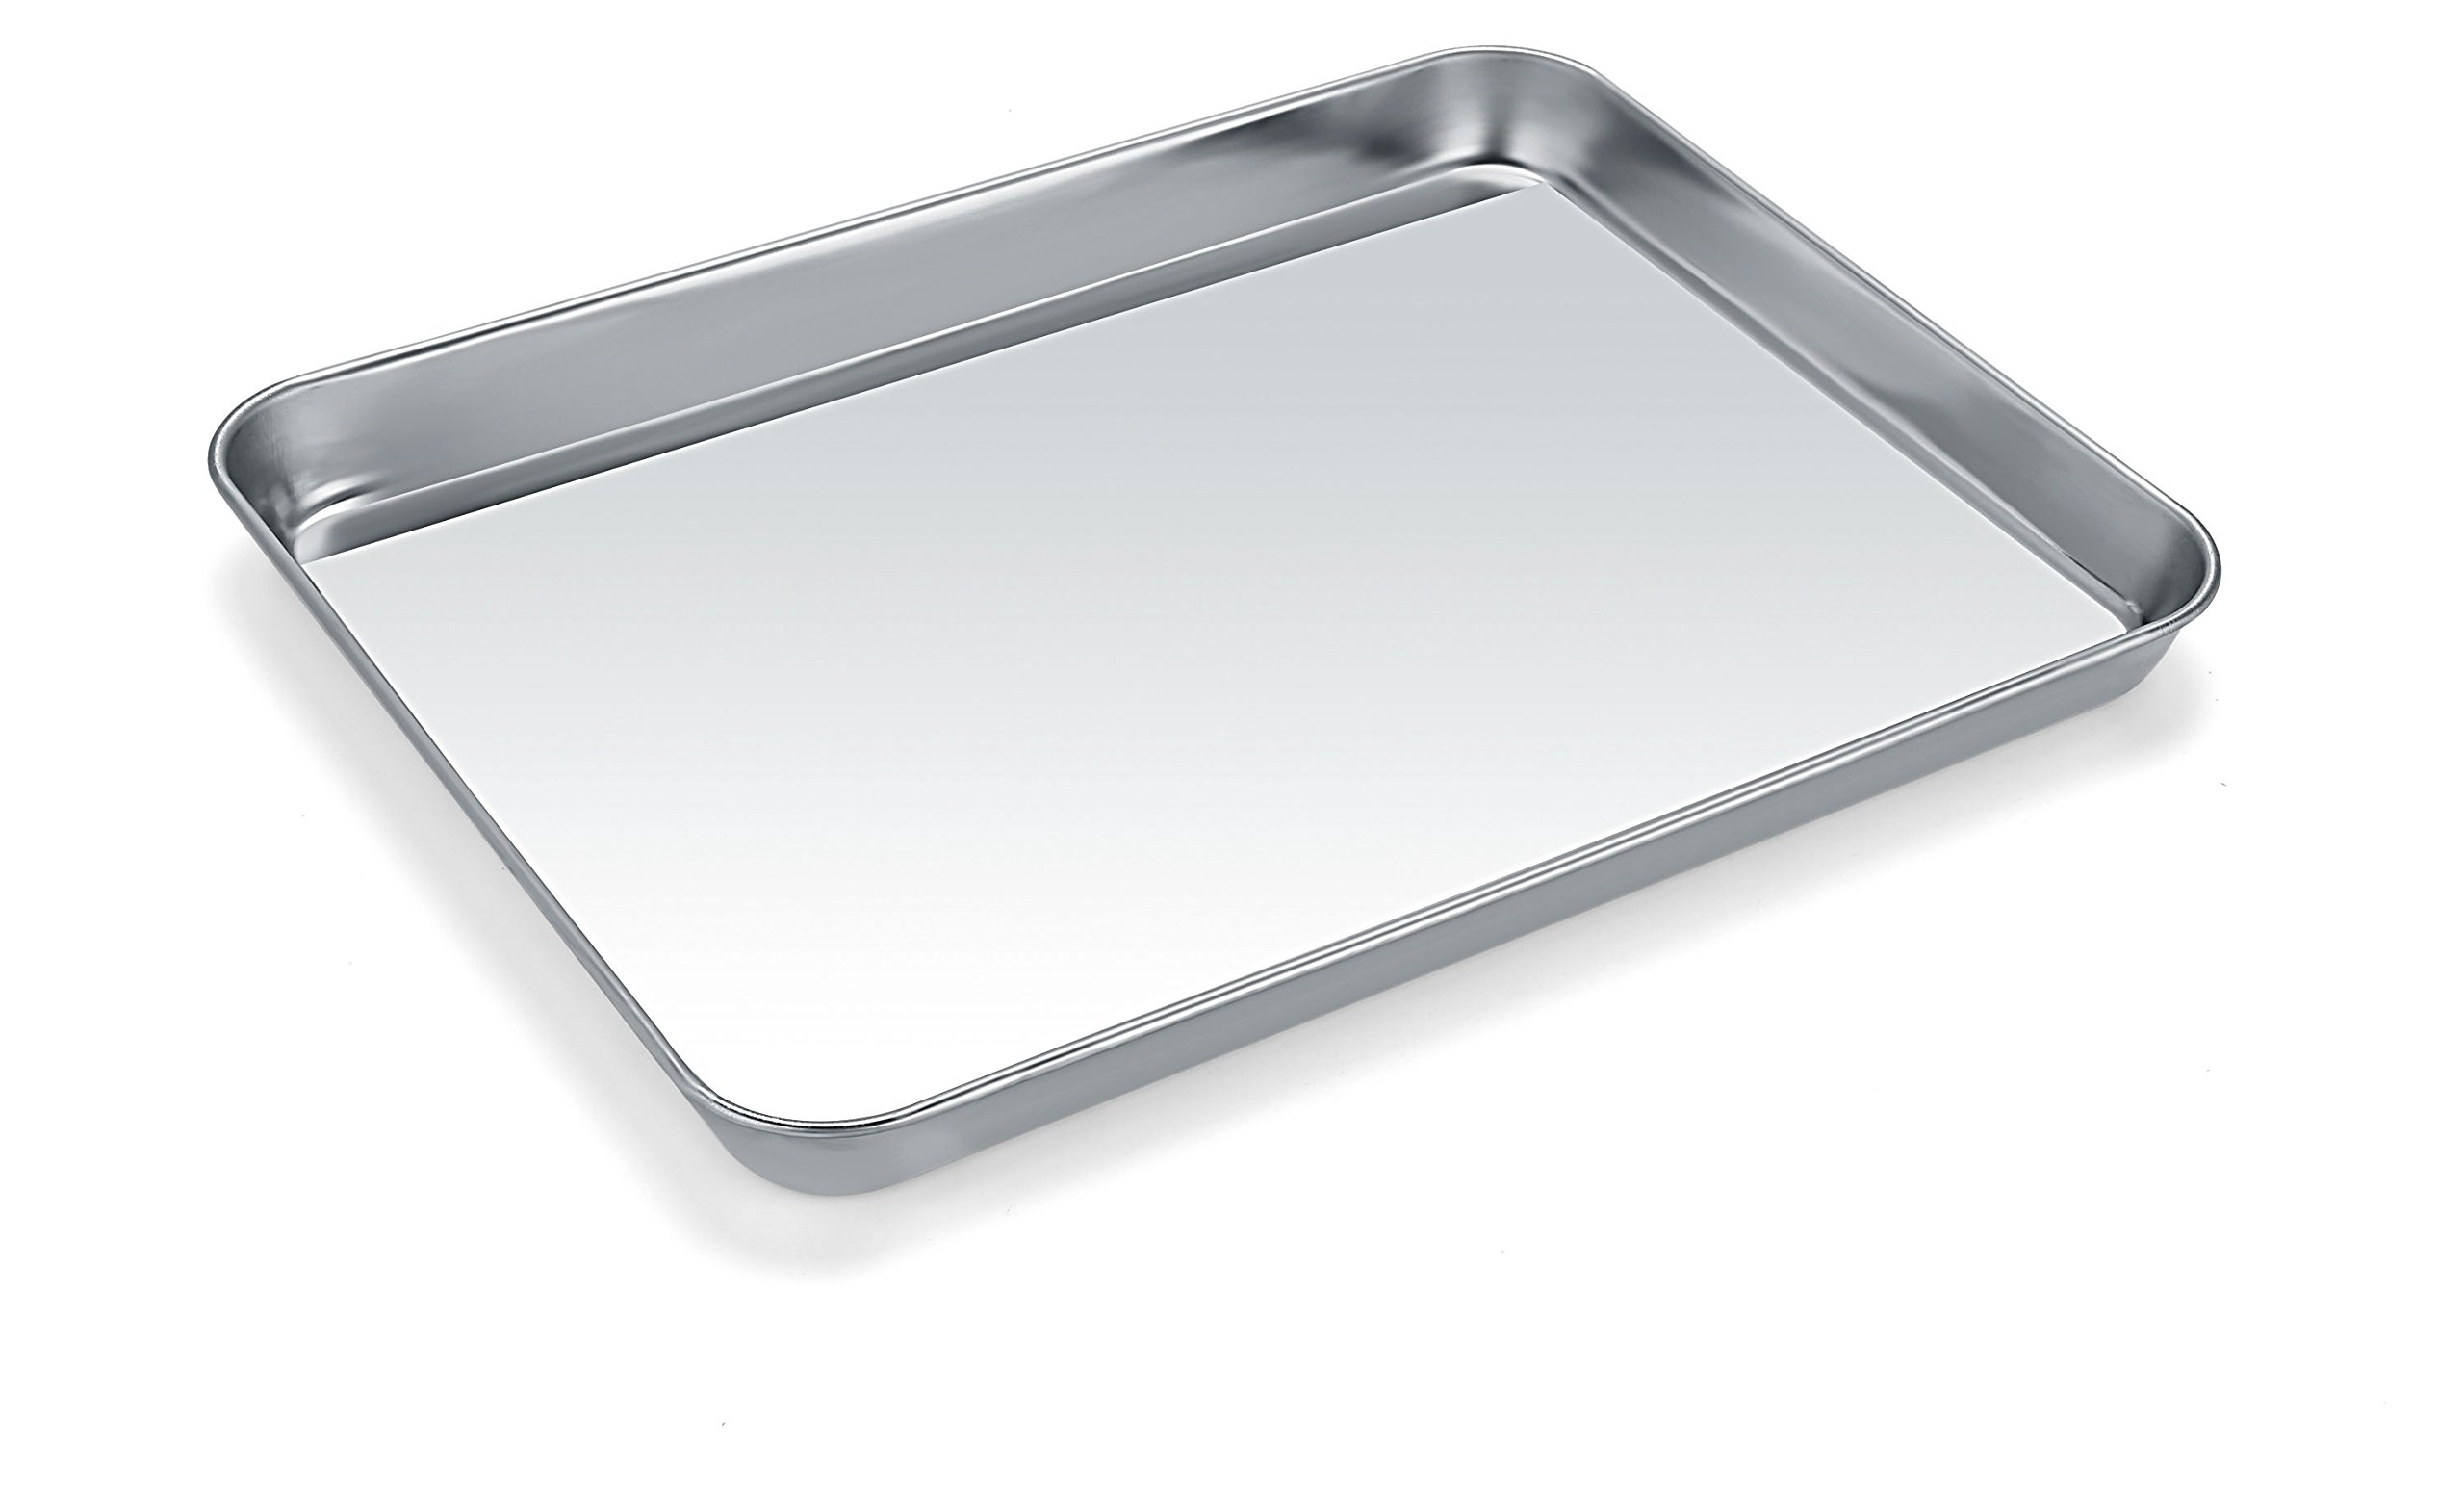 Small Baking Sheets, HKJ Chef Baking Pans & Stainless Steel Cookie Sheets & Mini Toaster Oven Tray Pans & Non Toxic & Healthy,Superior Mirror & Easy Clean